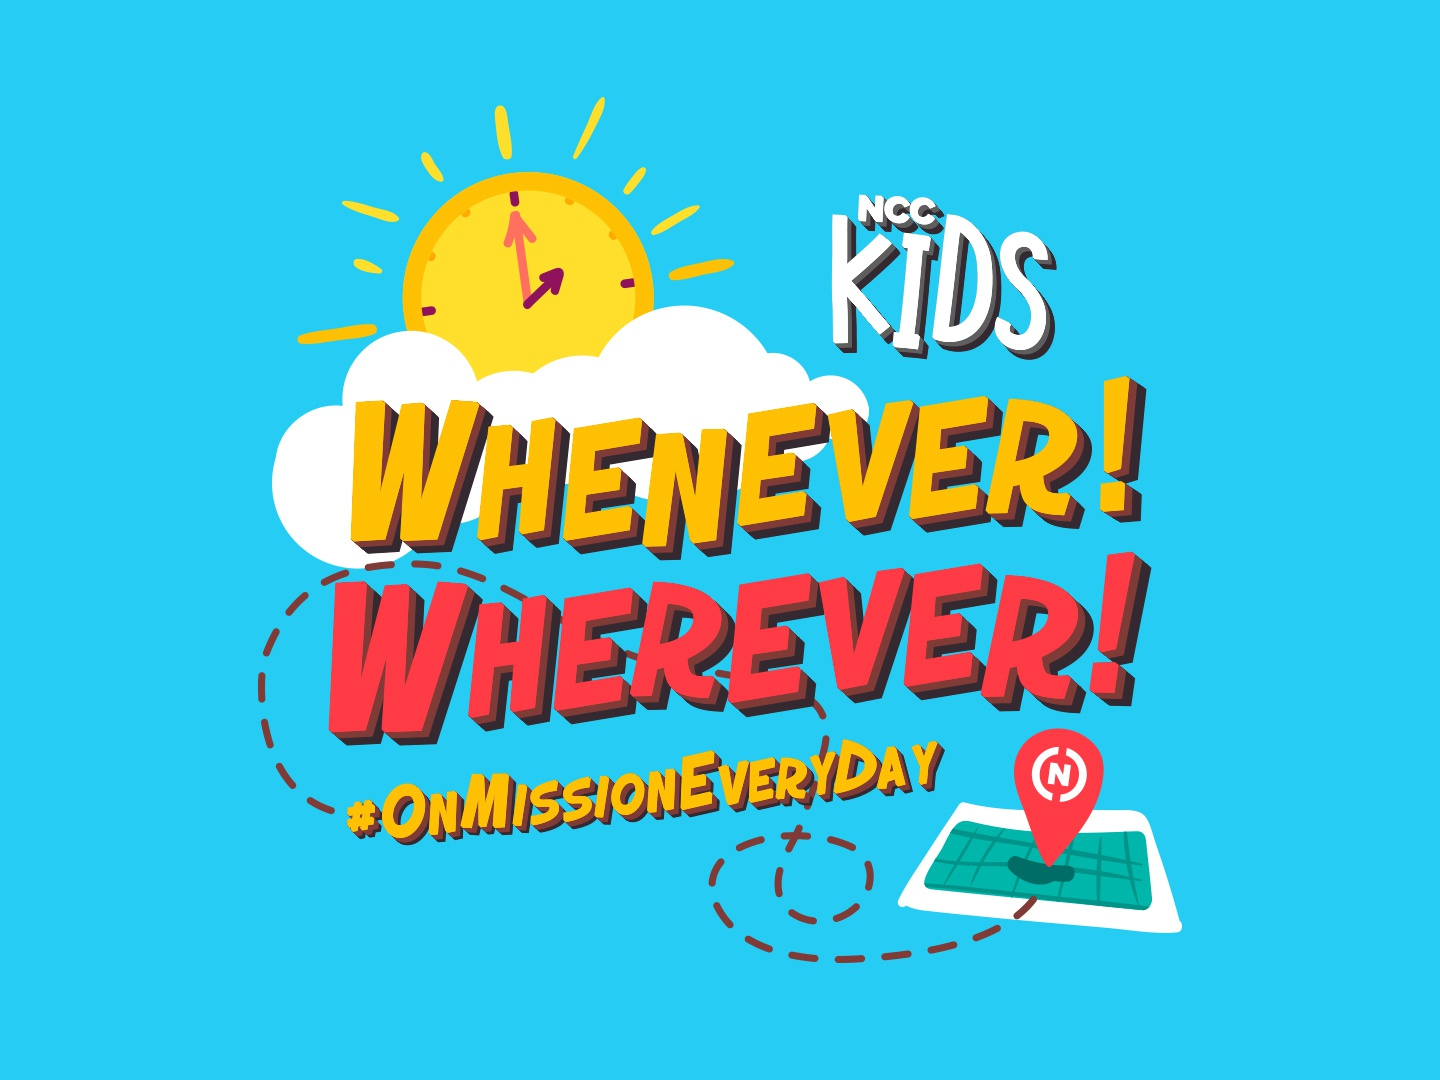 On Mission Every Day church on mission mission kids art clock sun map kids